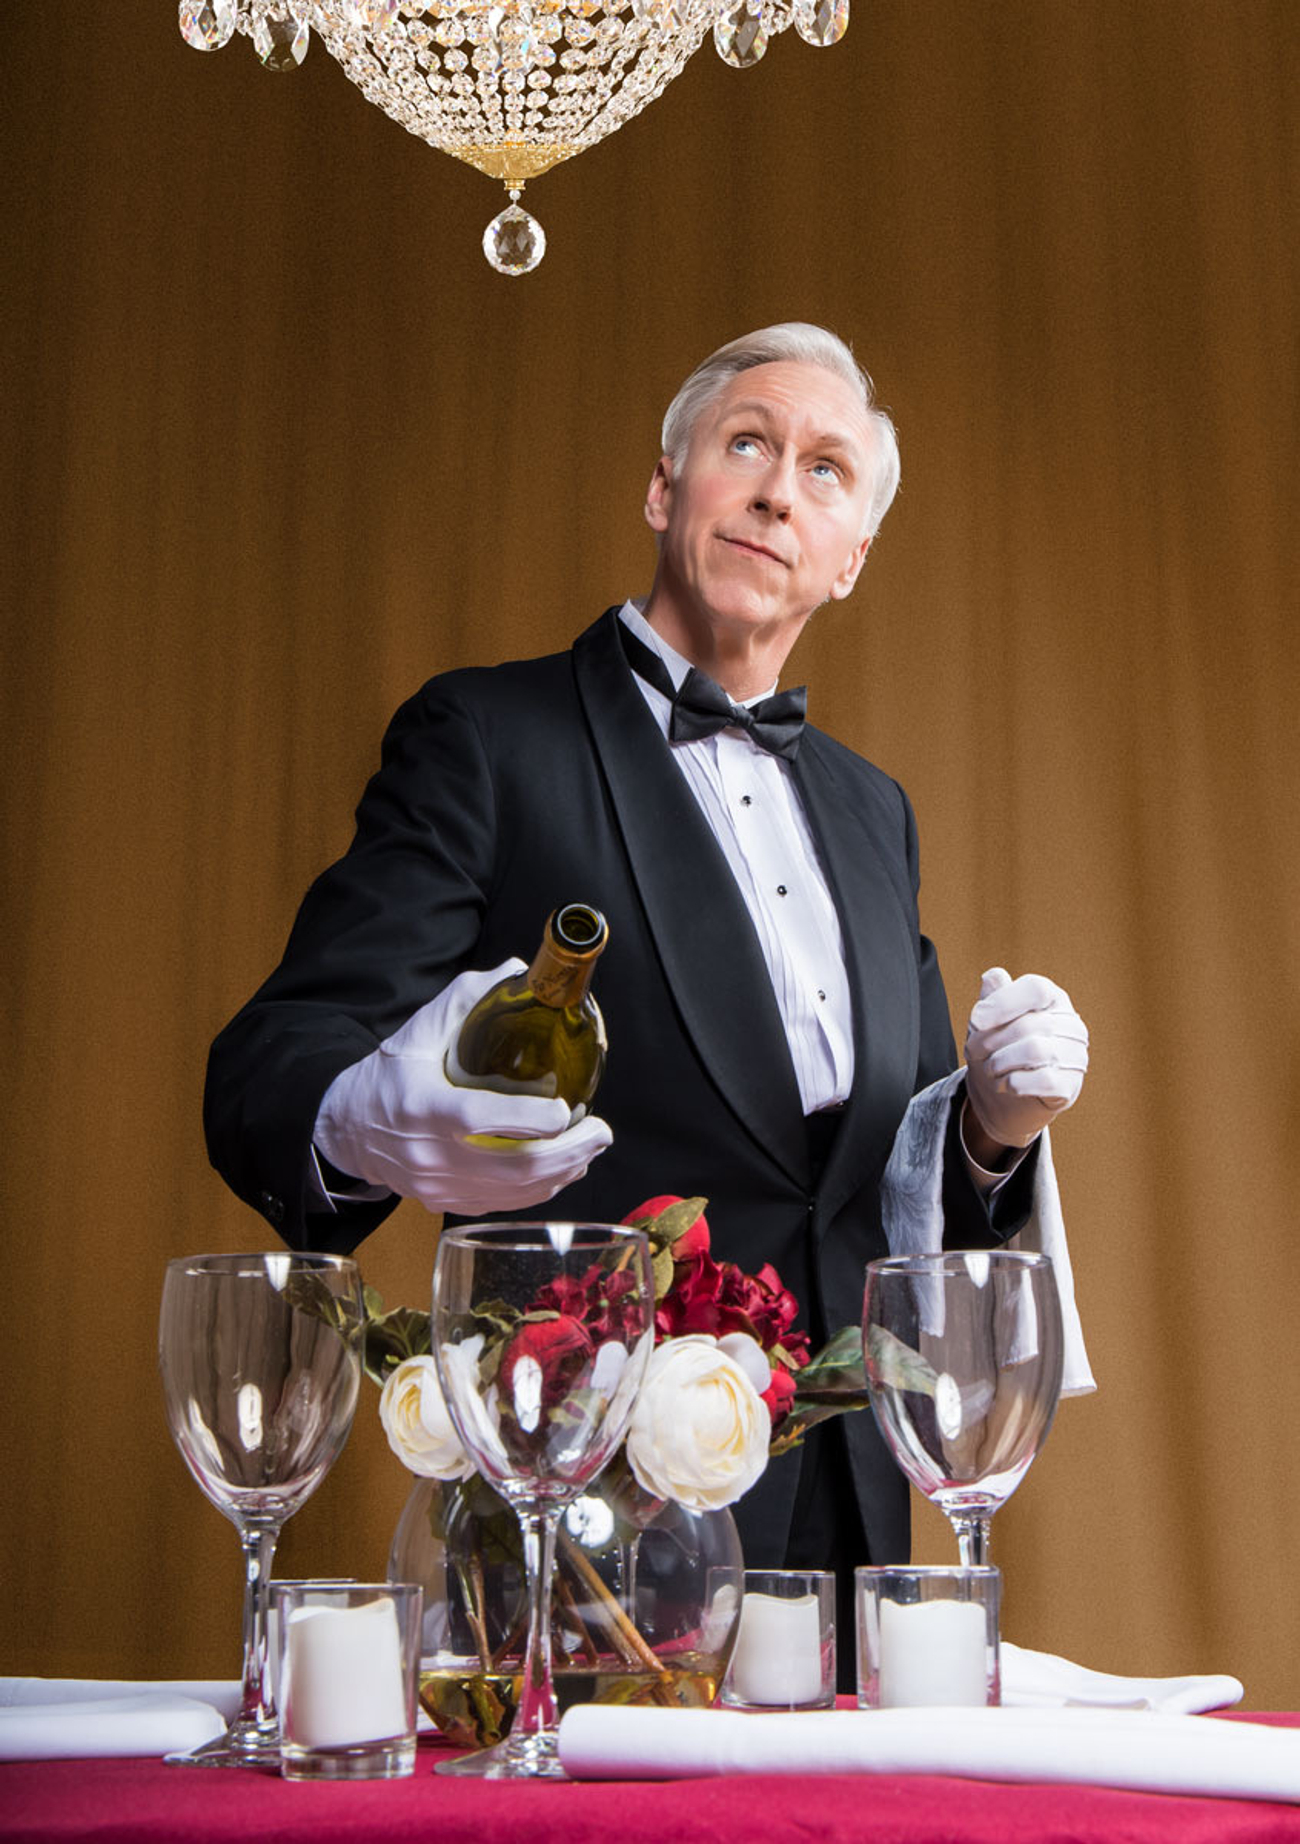 BWW Review: THE OLDEST LIVING CATER WAITER at Gateway Theatre